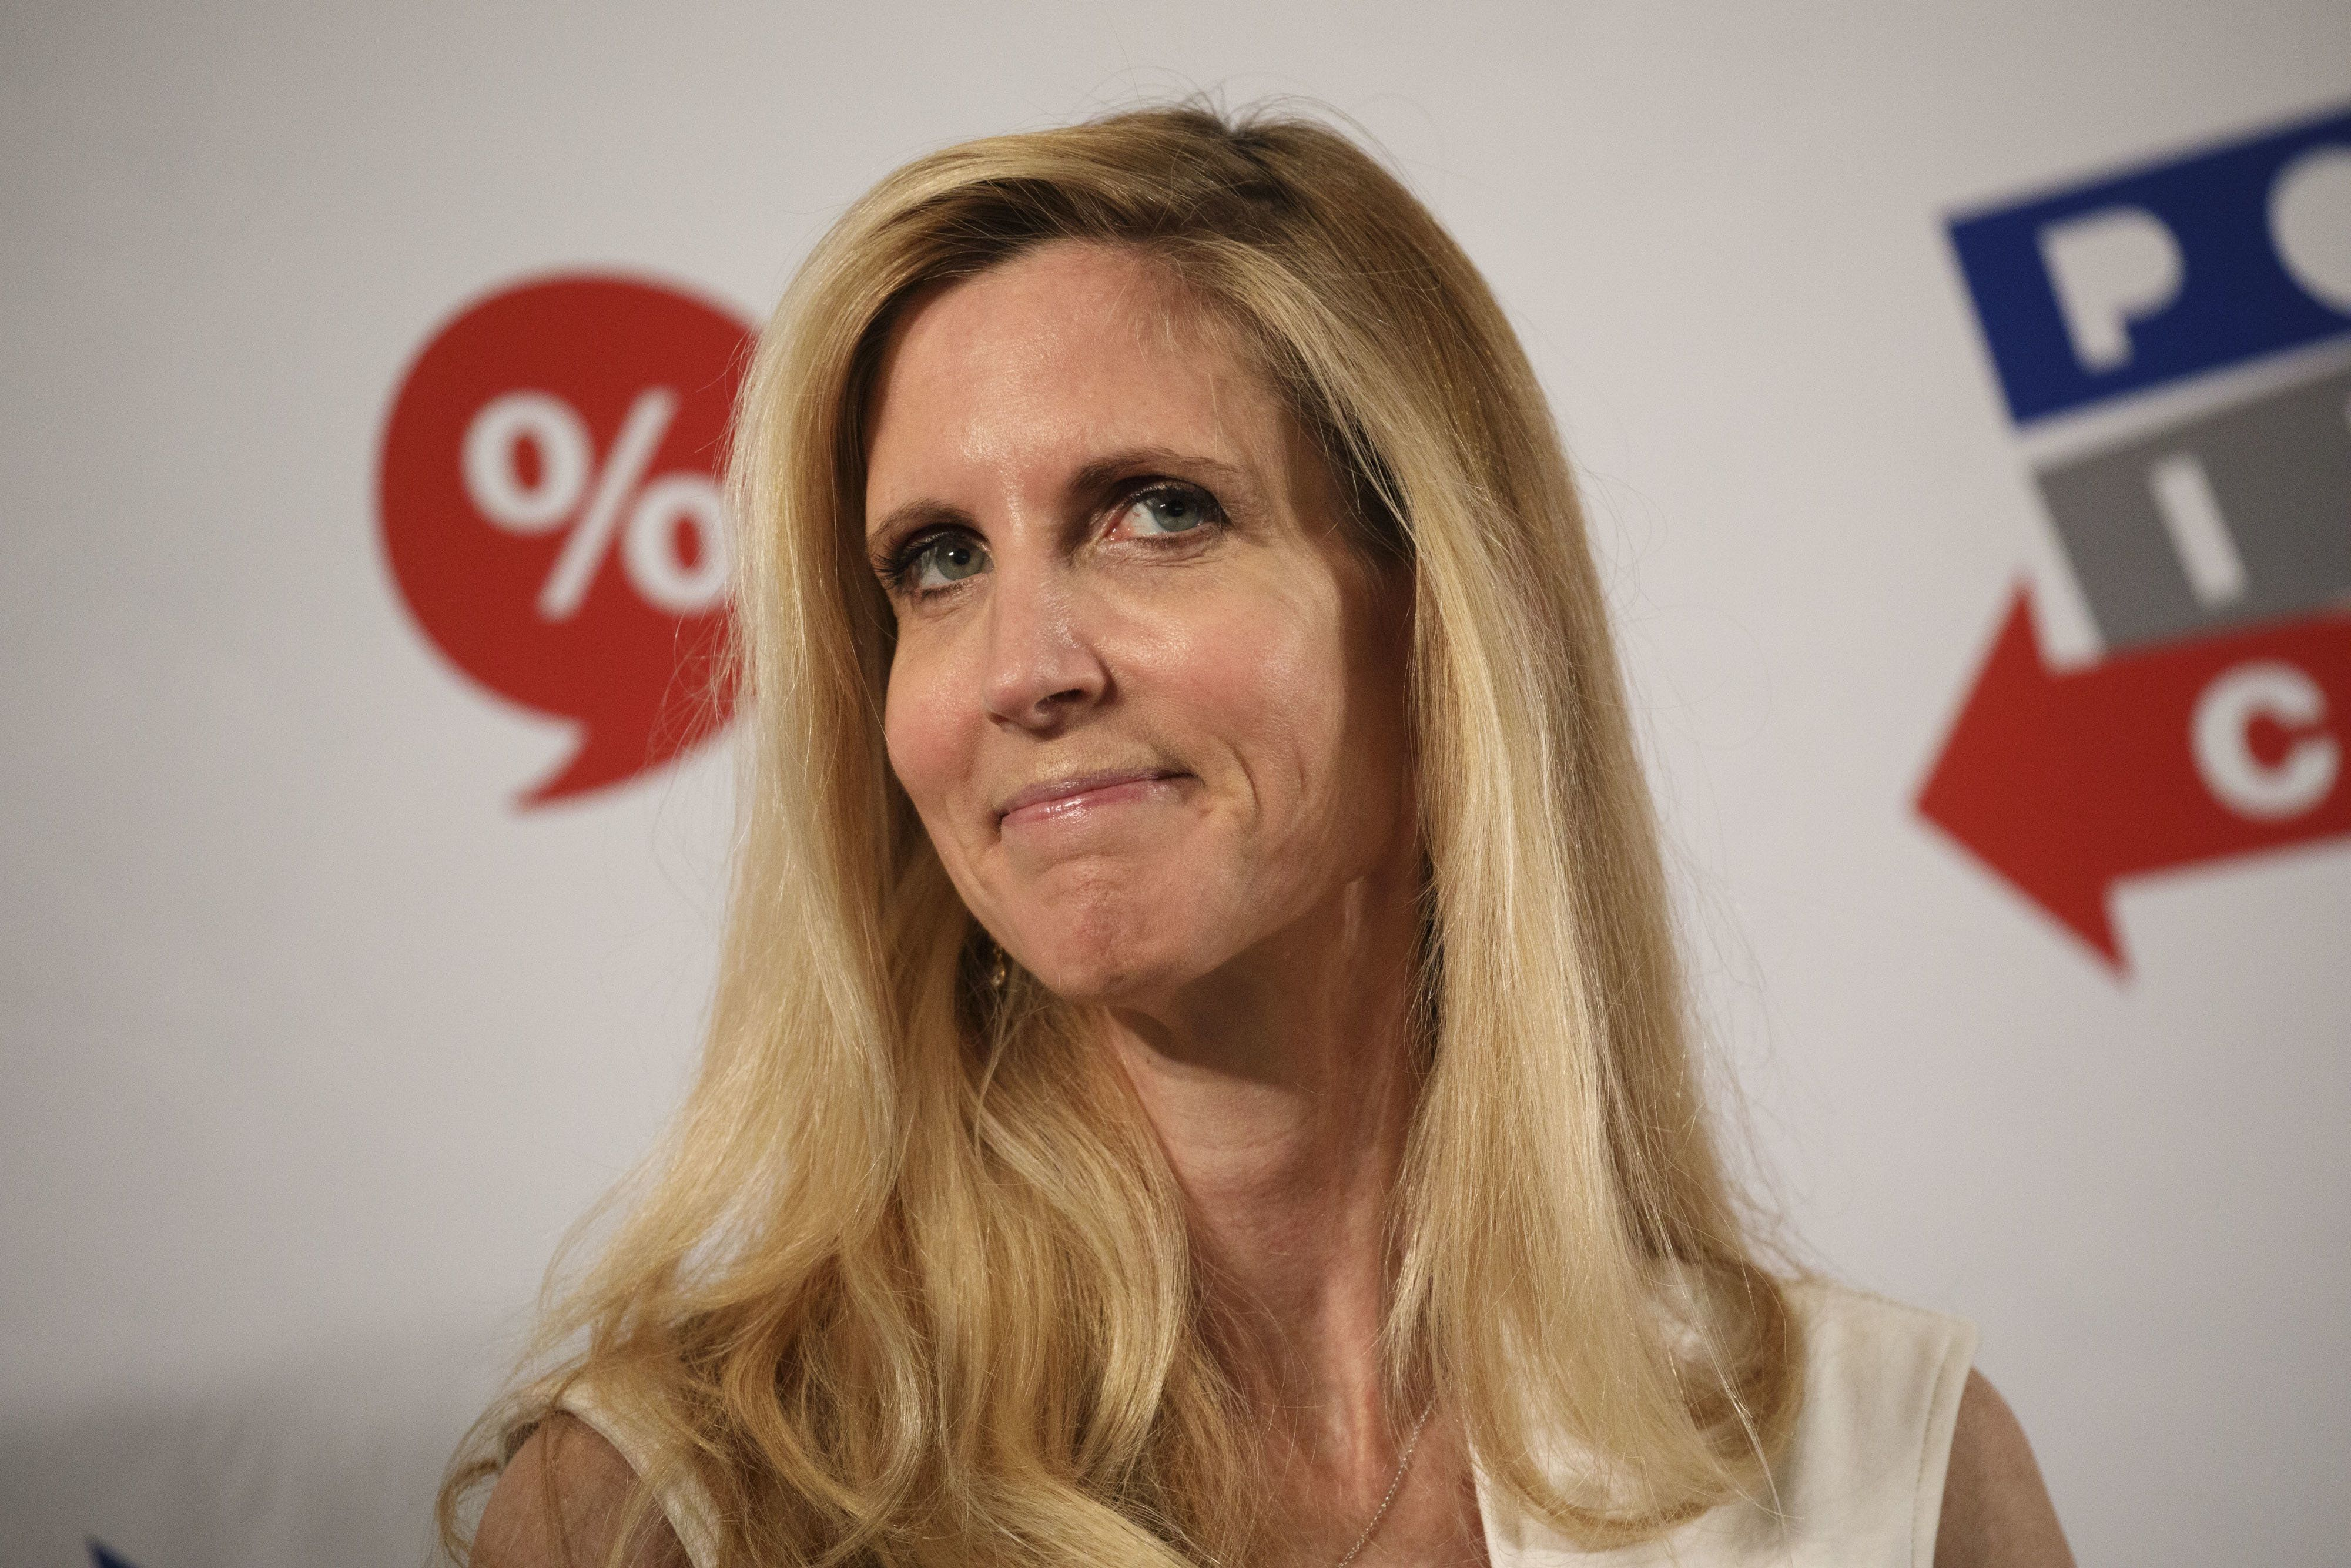 Author Ann Coulter listens during a panel discussion at the Politicon convention inside the Pasadena Convention Center in Pasadena, California, U.S., on Saturday, July 29, 2017. During the third annual Politicon pundits, politicians, comedians and entertainers gather to discuss issues that touch all sides of the political spectrum. Photographer: Patrick T. Fallon/Bloomberg via Getty Images